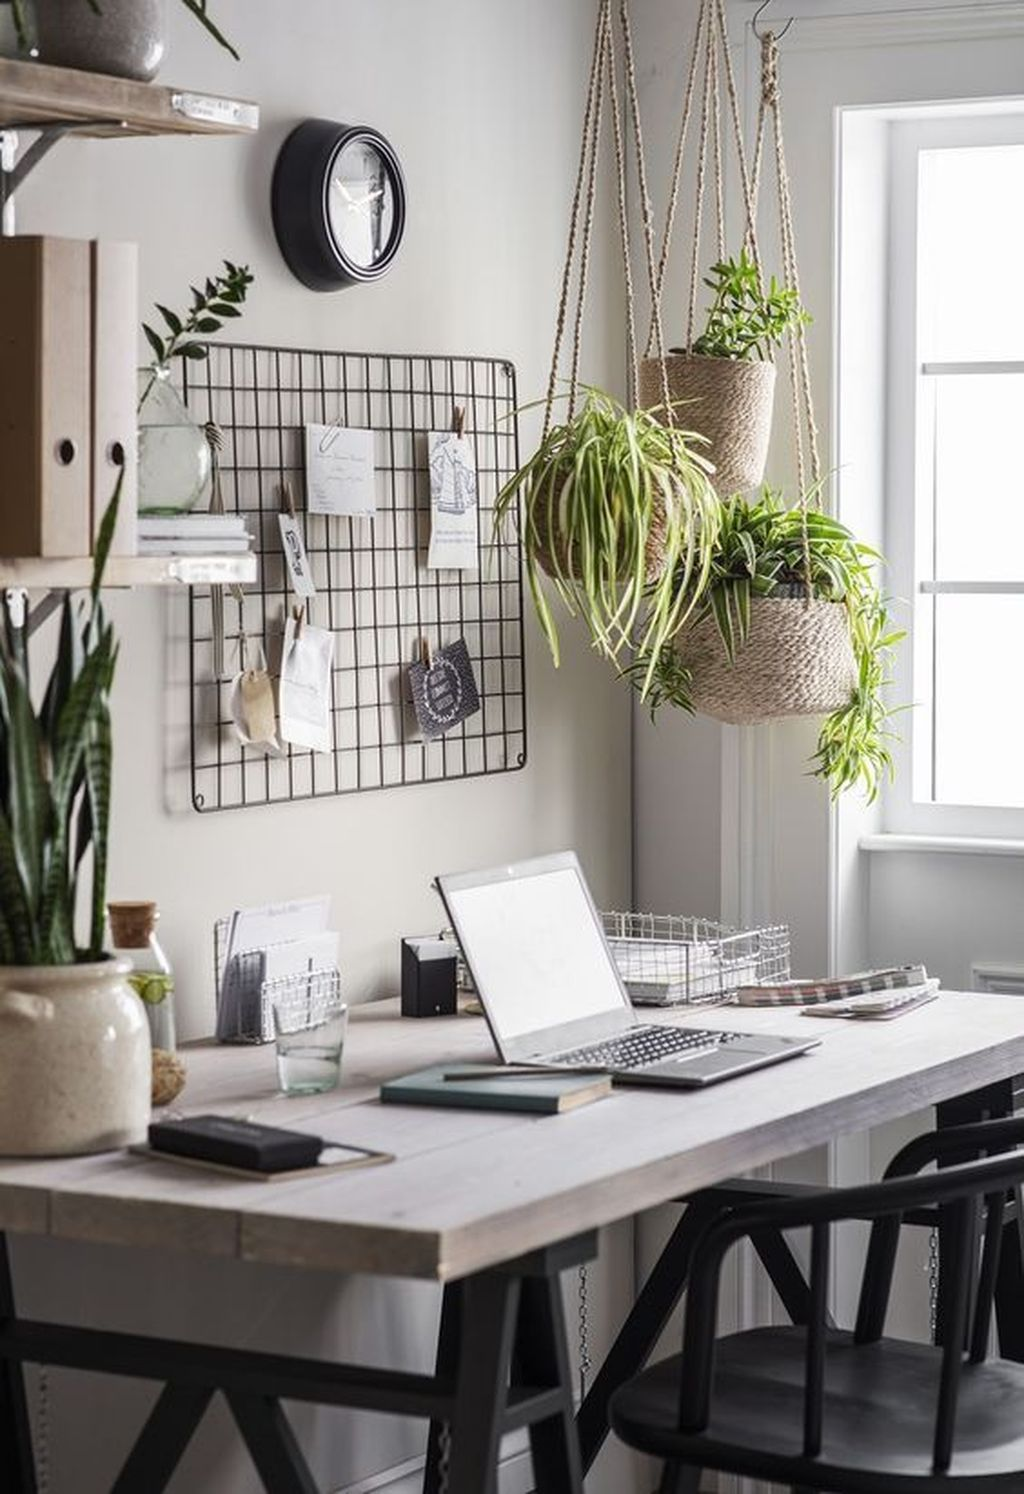 30 Functional And Creative Home Office Ideas: 30 Amazing Apartment Office Decorationg Ideas